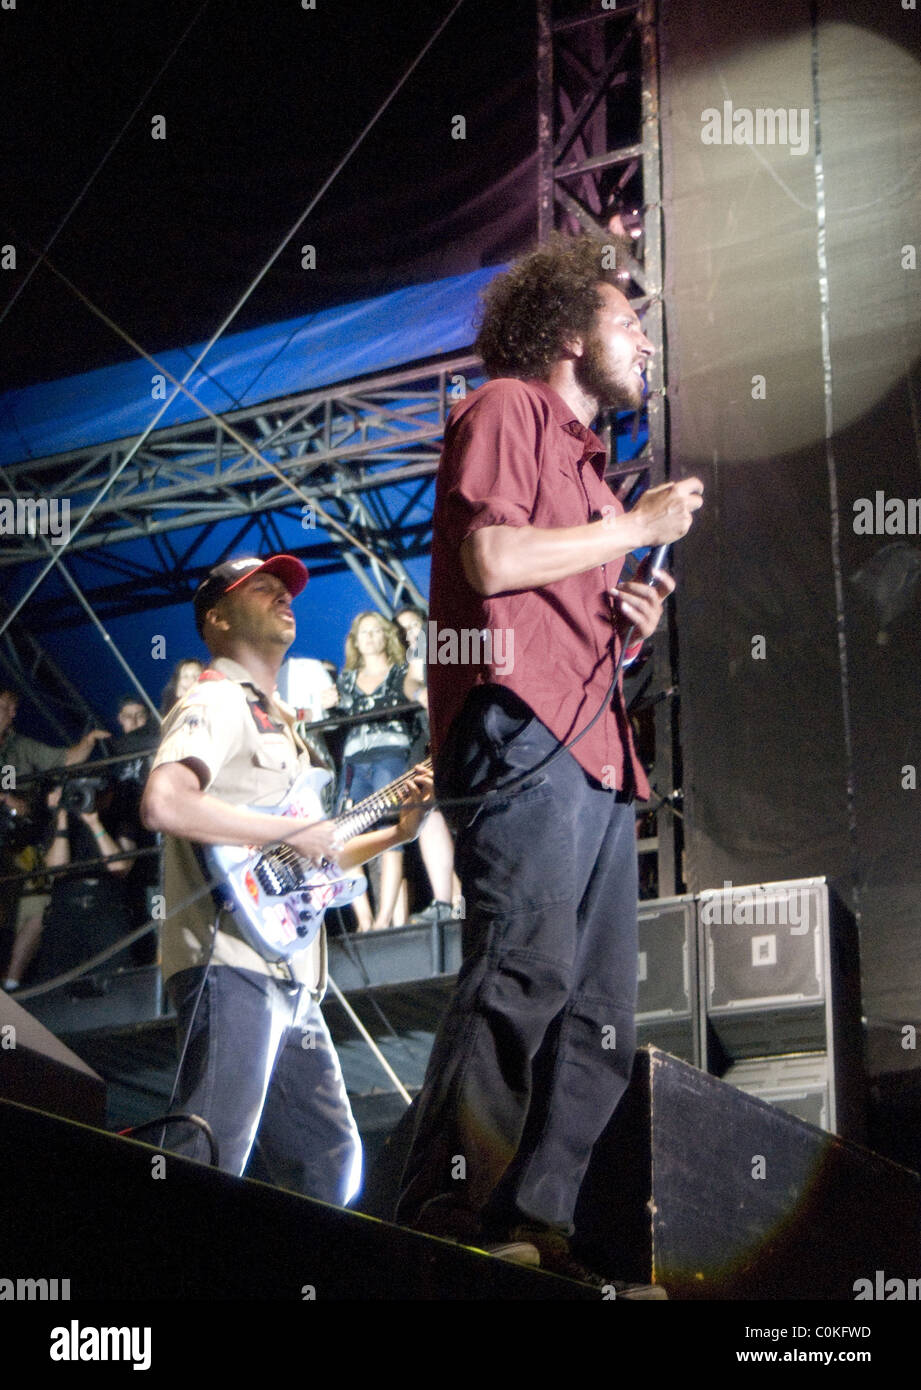 Zack de la Rocha and Tom Morello of Rage Against the Machine performing at Lollapalooza 2008 at Grant Park Chicago, - Stock Image